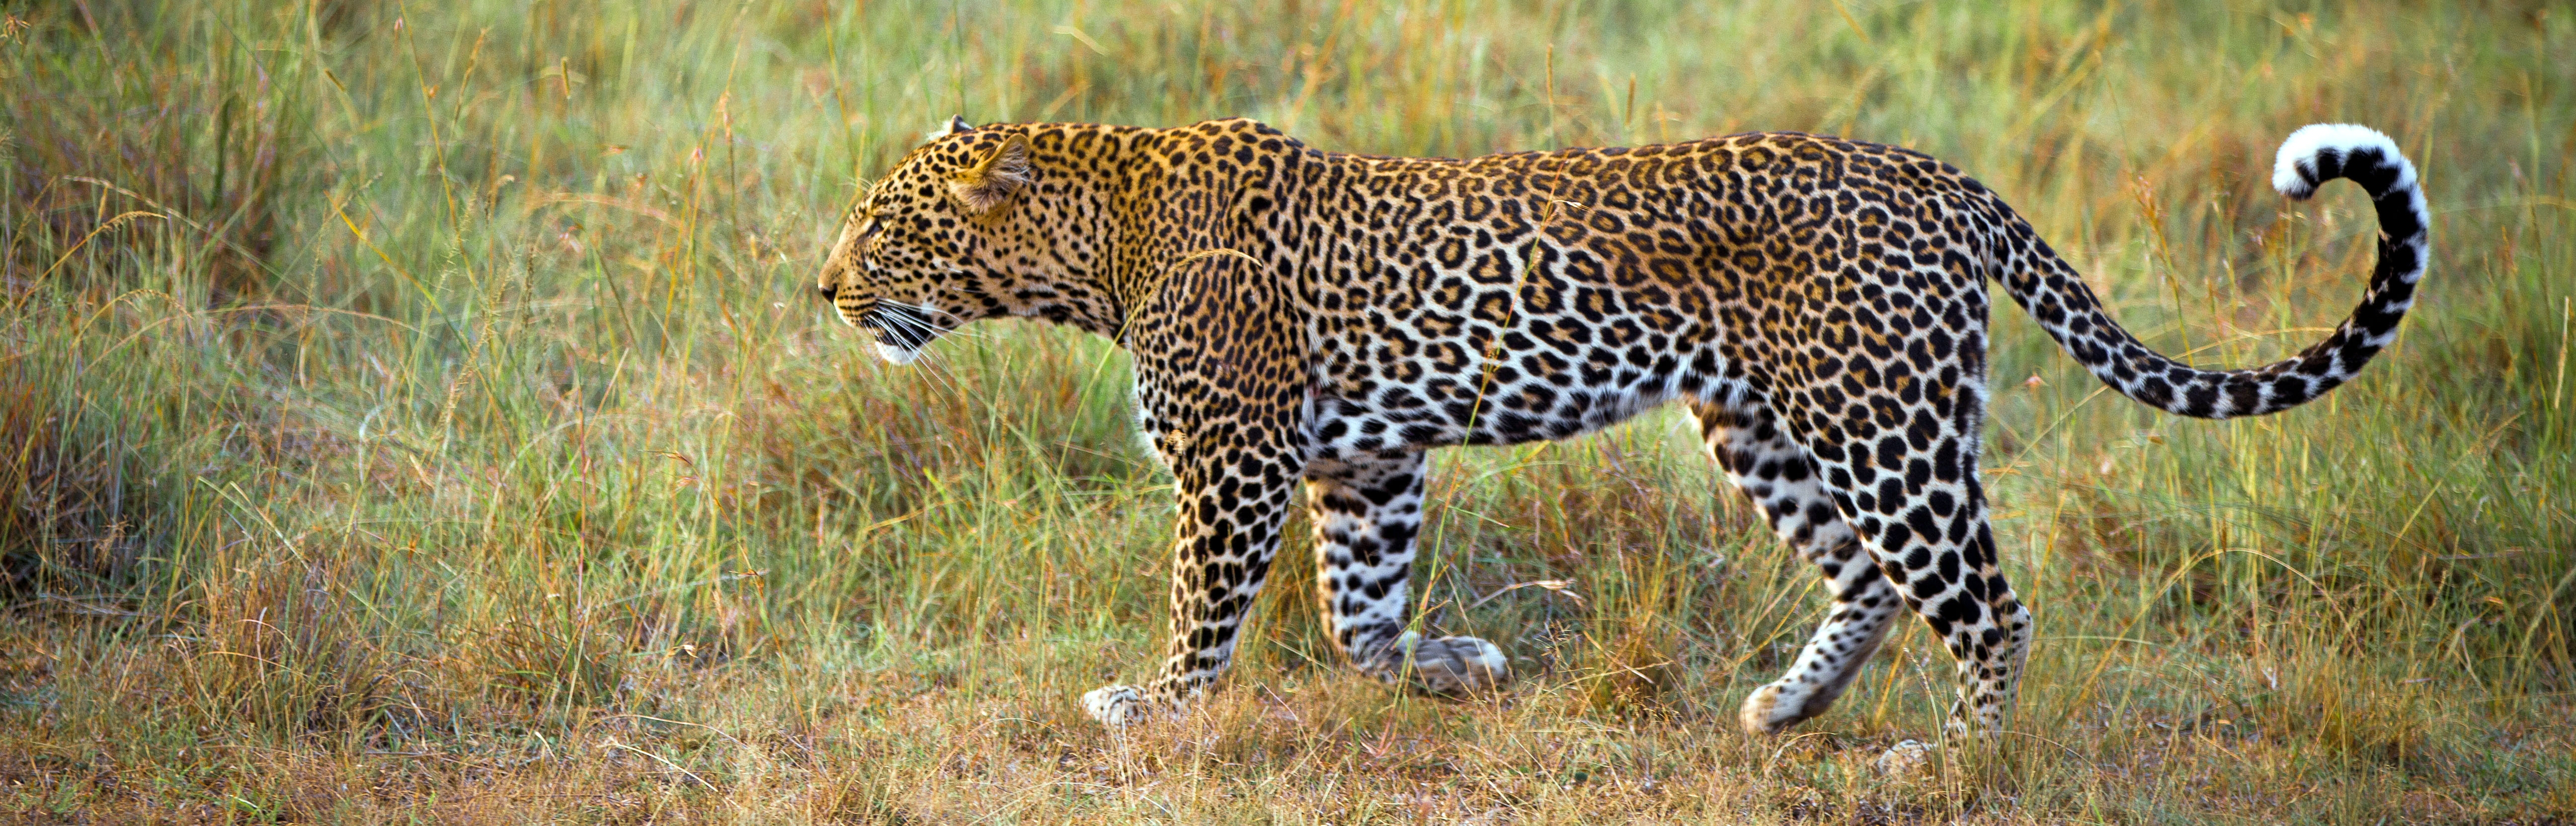 A leopard in Buffalo Springs | Apex Photo Safaris